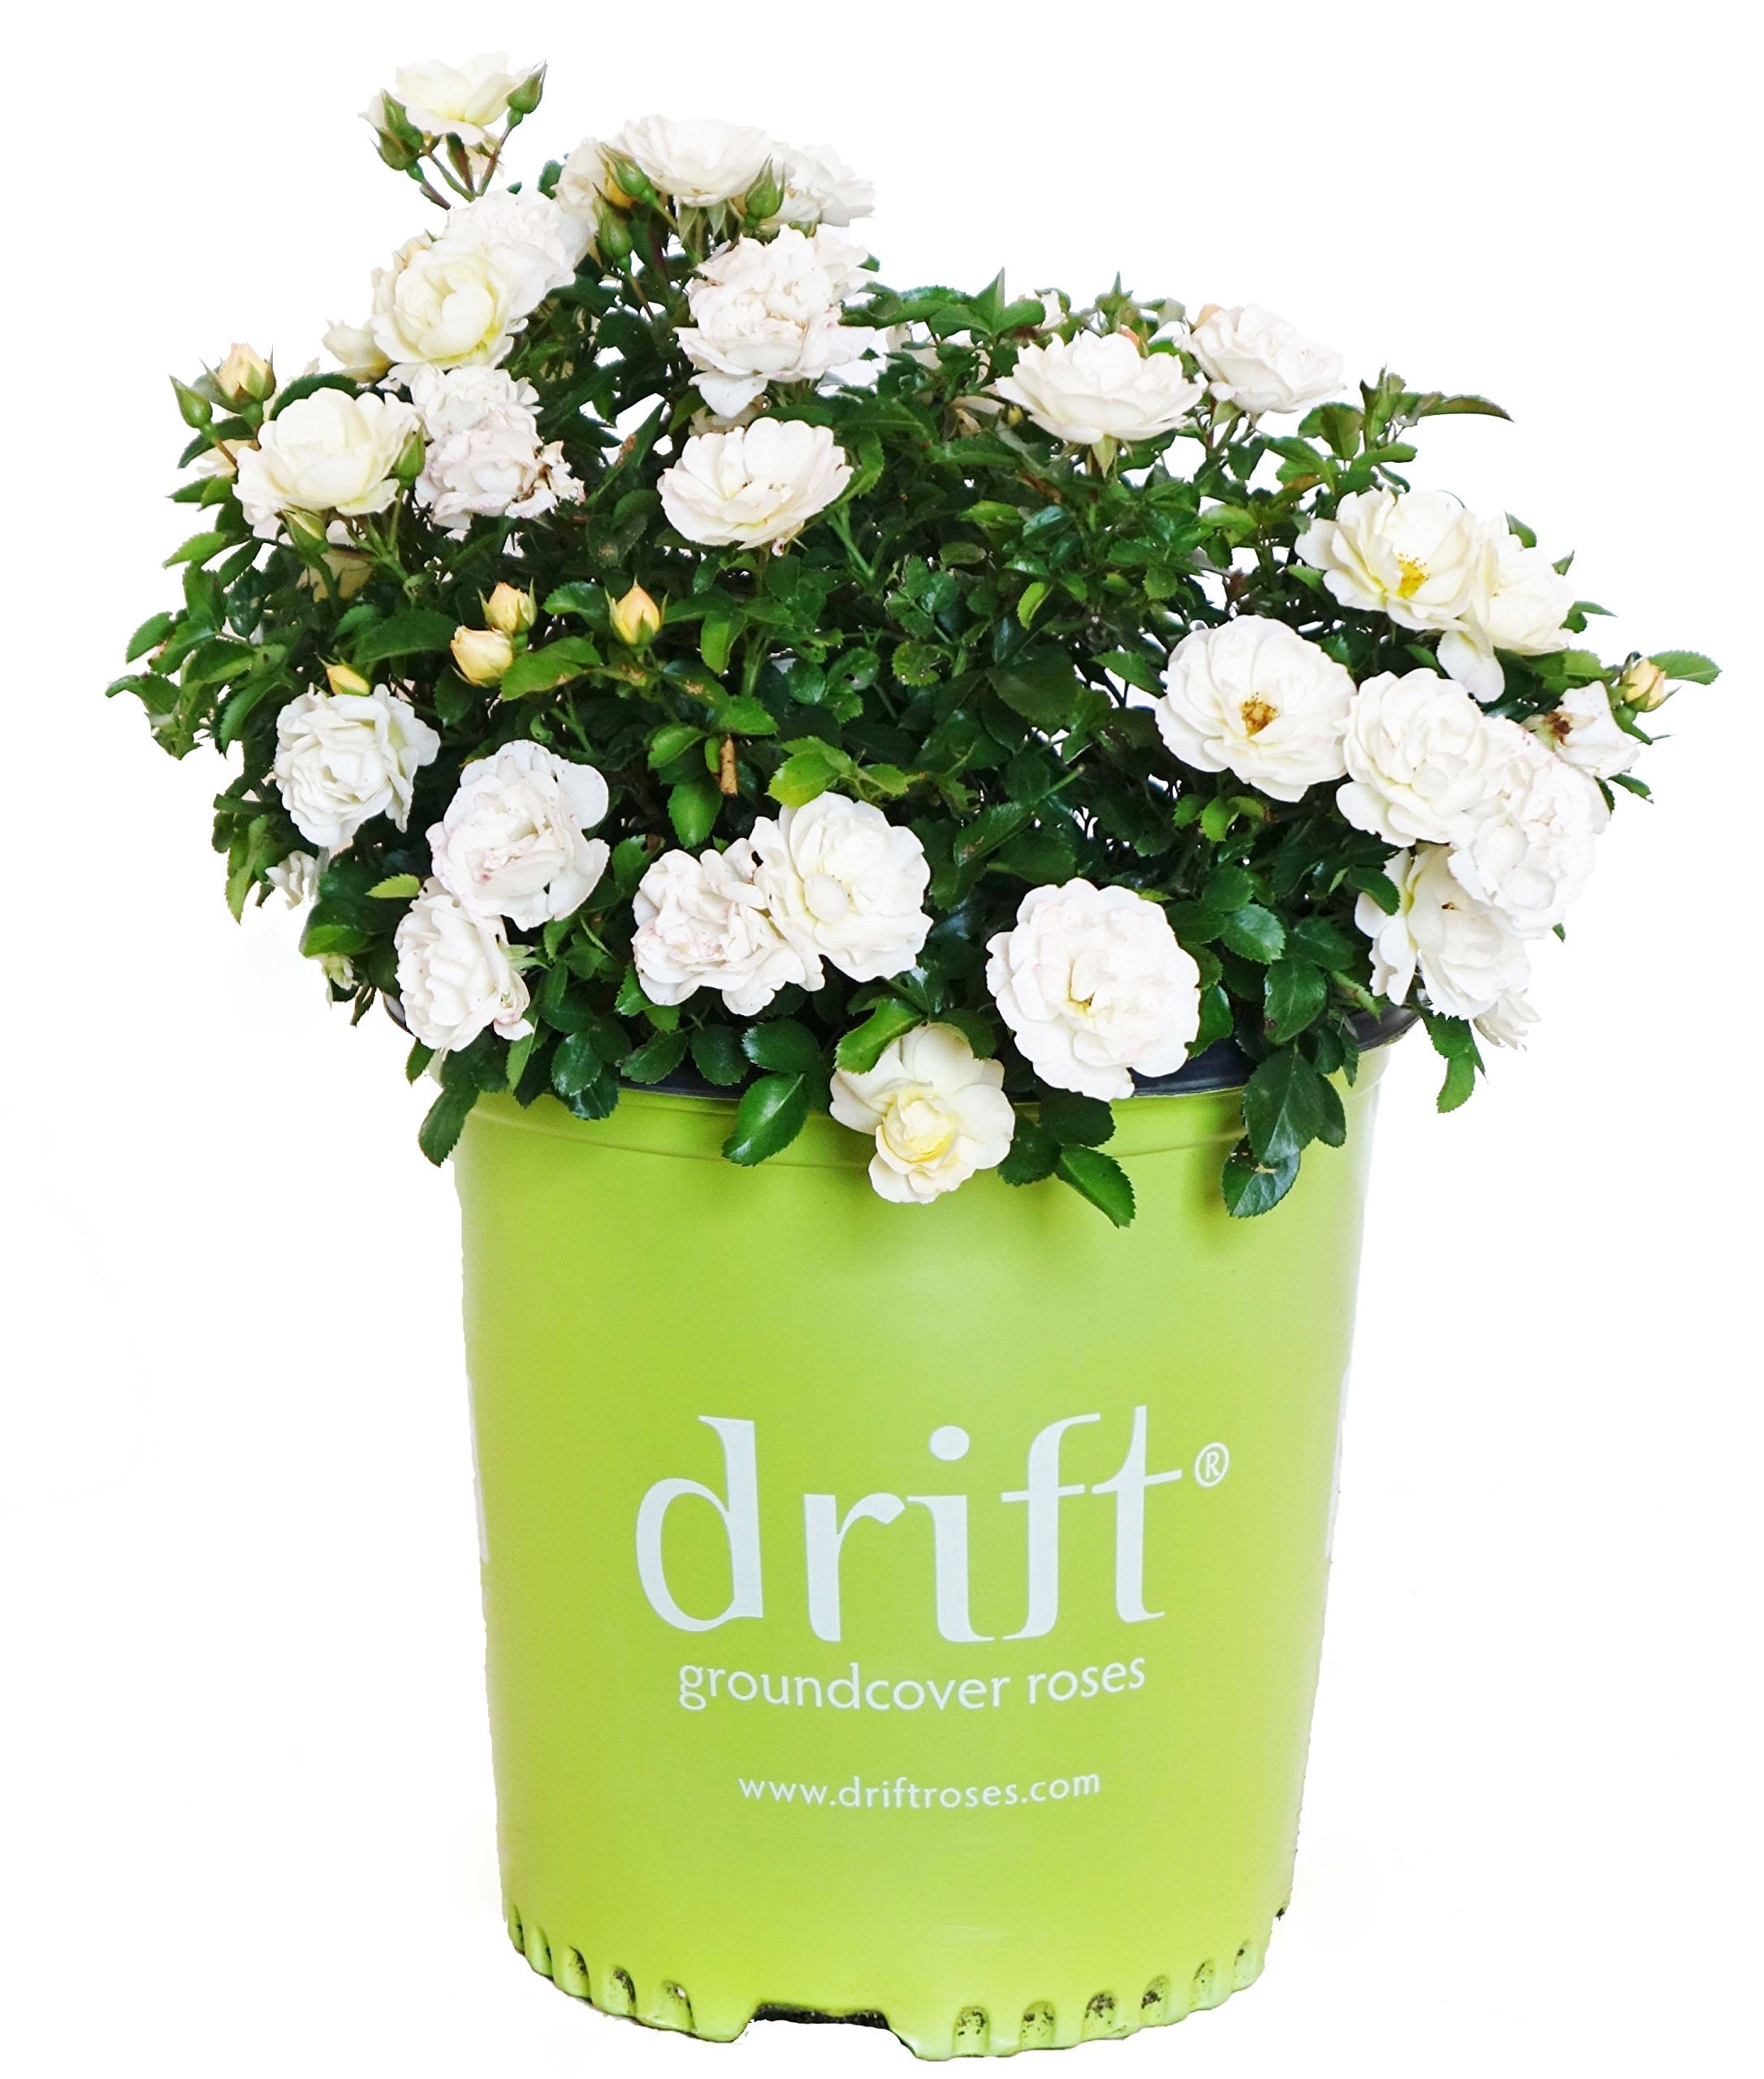 Drift Roses - Rosa Popcorn Drift (Groundcover Rose) Rose, double yellow flowers, #2 - Size Container